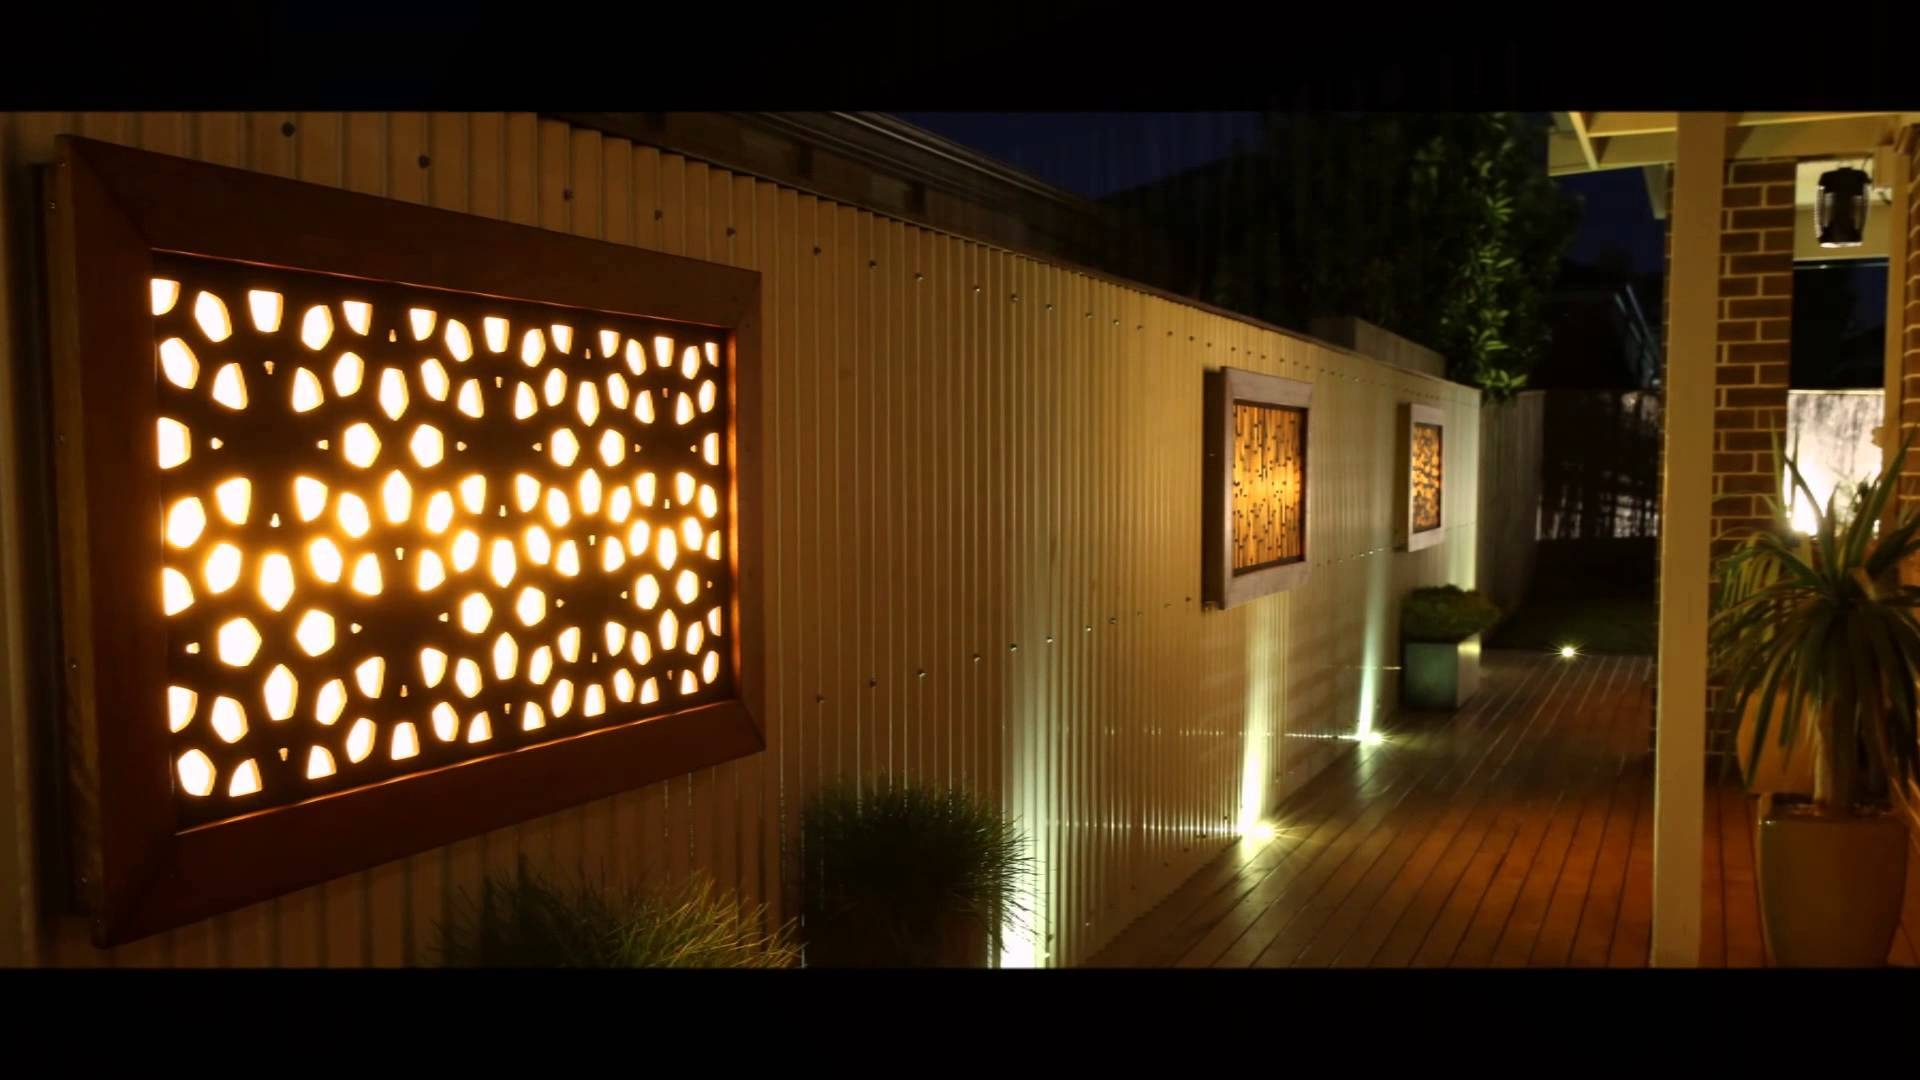 Light In The Box Wall Art - Neuro-Tic throughout Lights In The Box Lighting (Image 8 of 12)